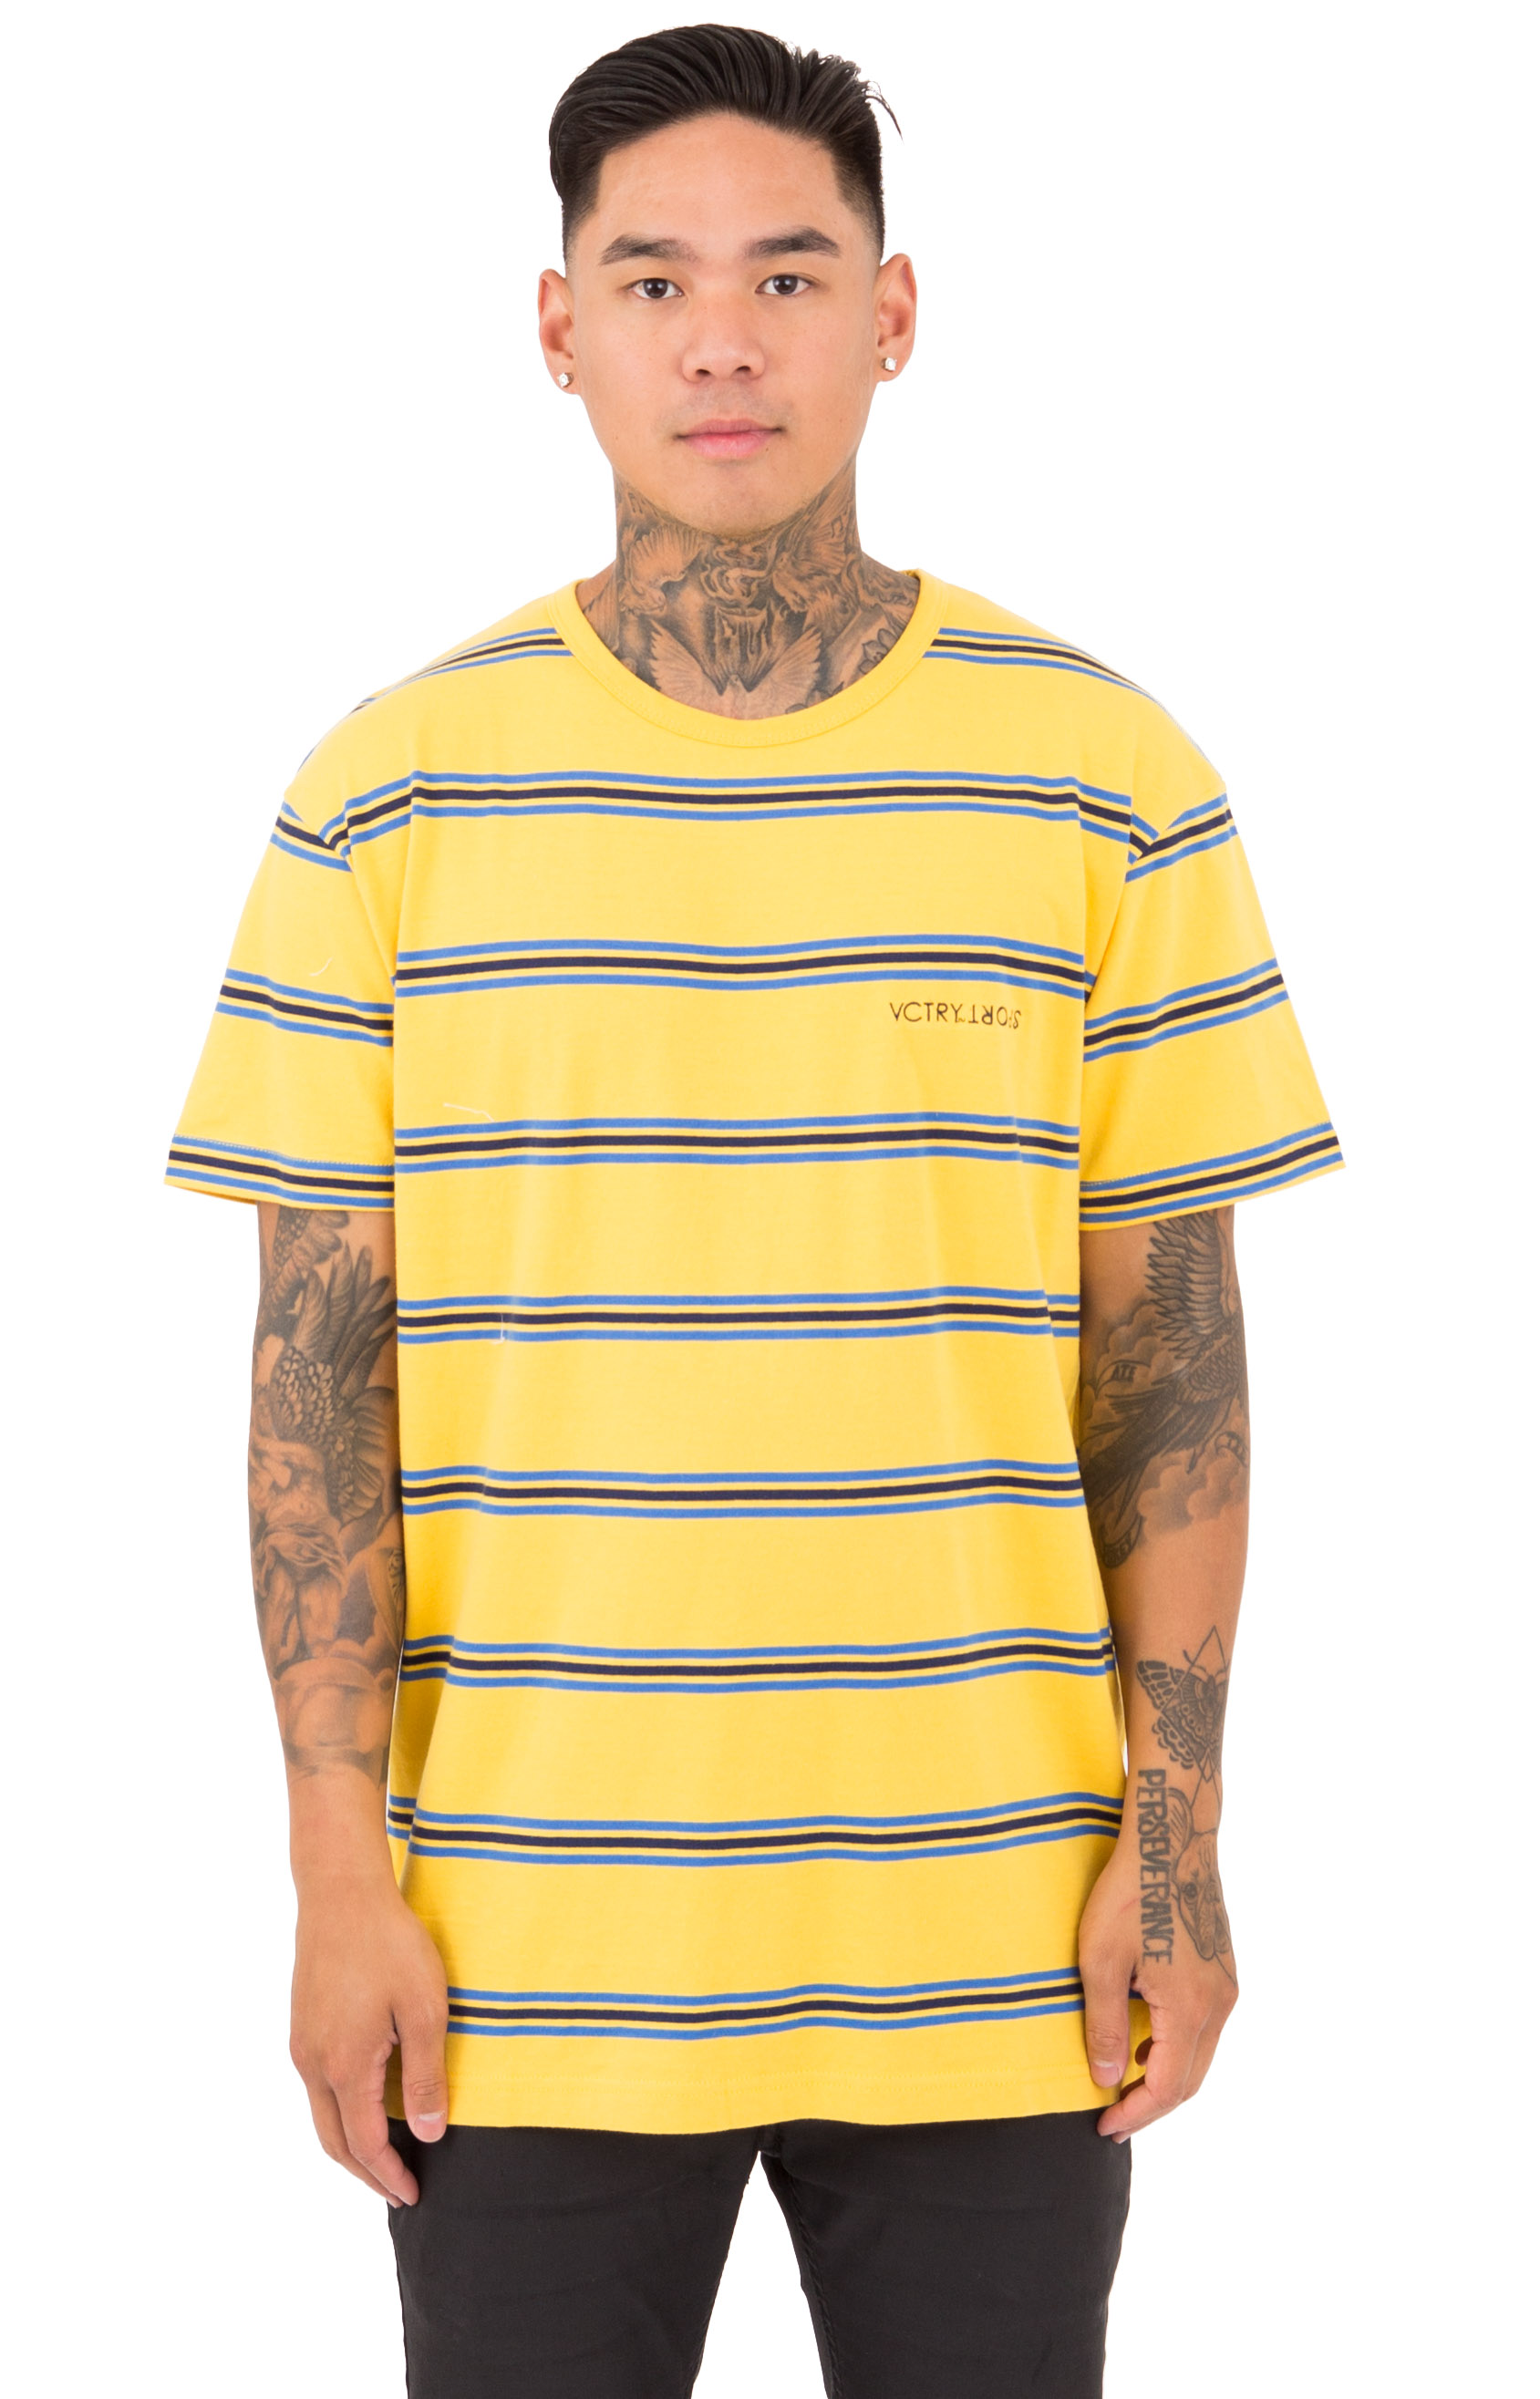 10 Deep, Members Stripe T-Shirt - Yellow